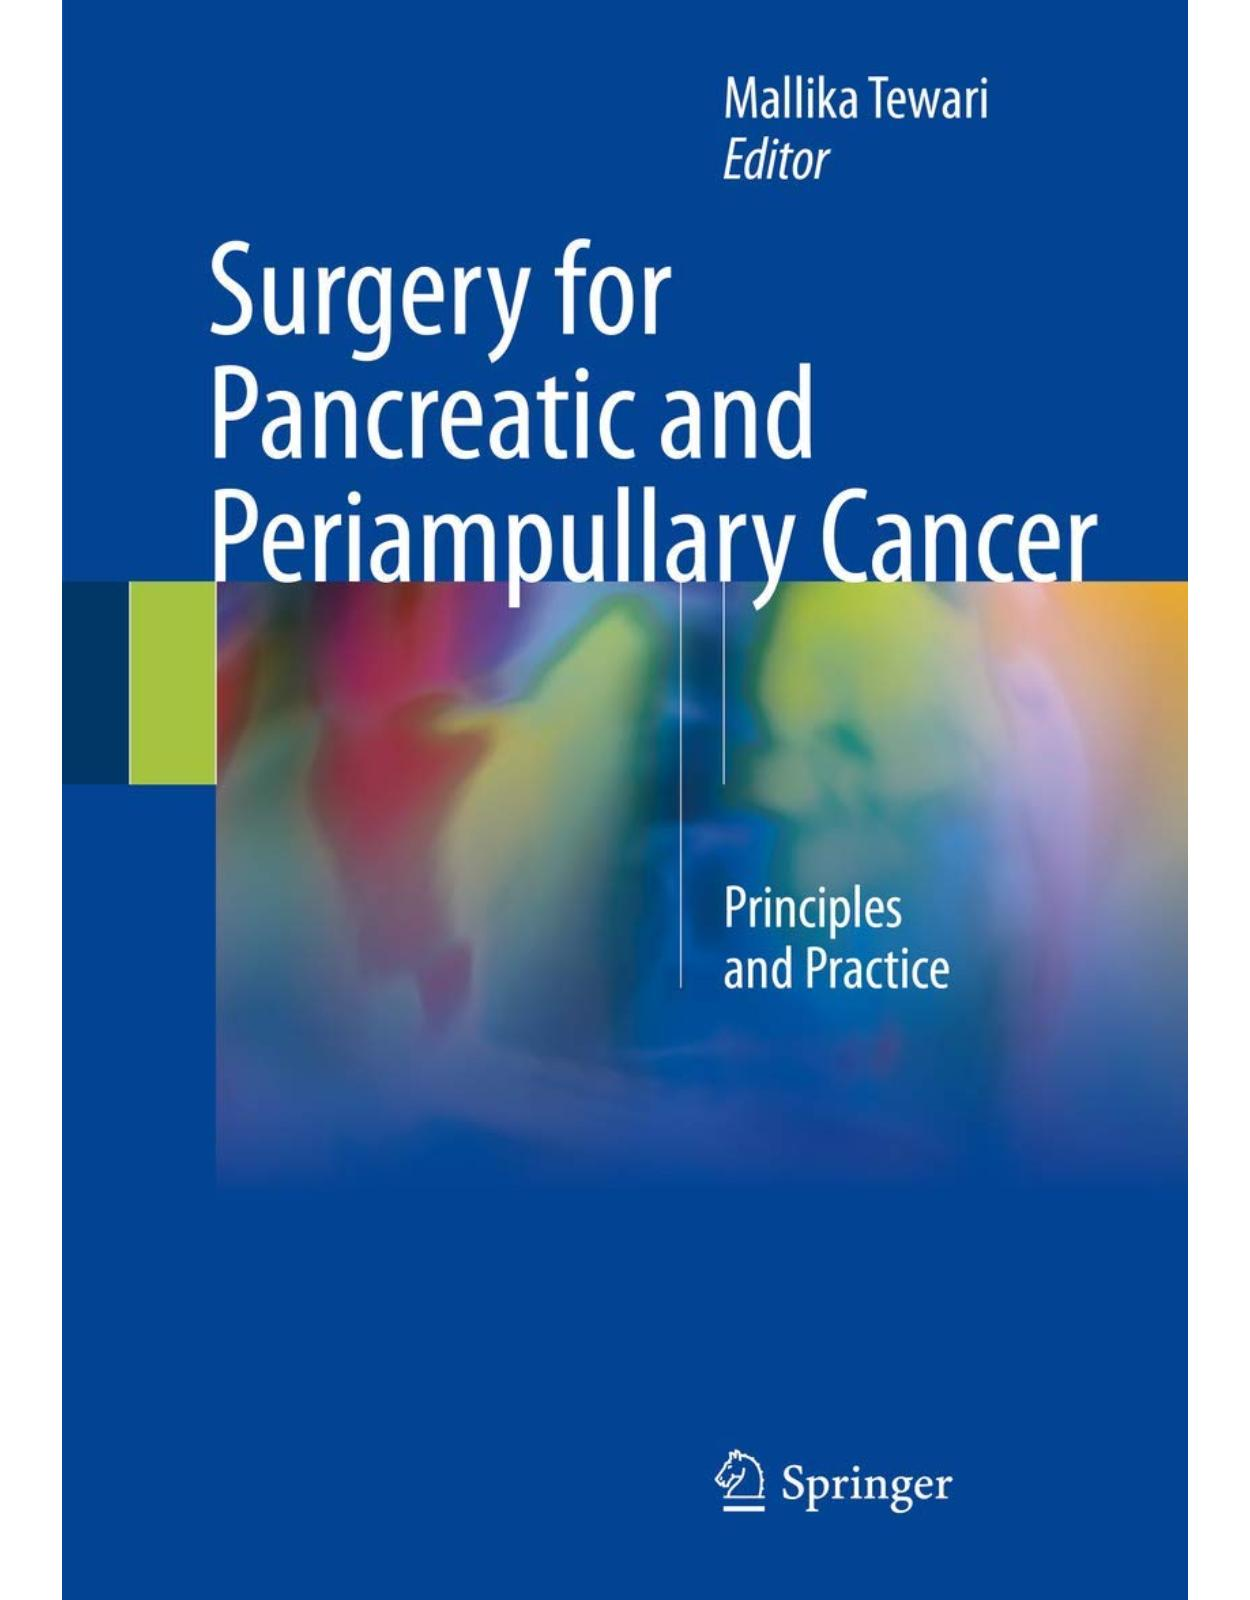 Surgery for Pancreatic and Periampullary Cancer: Principles and Practice